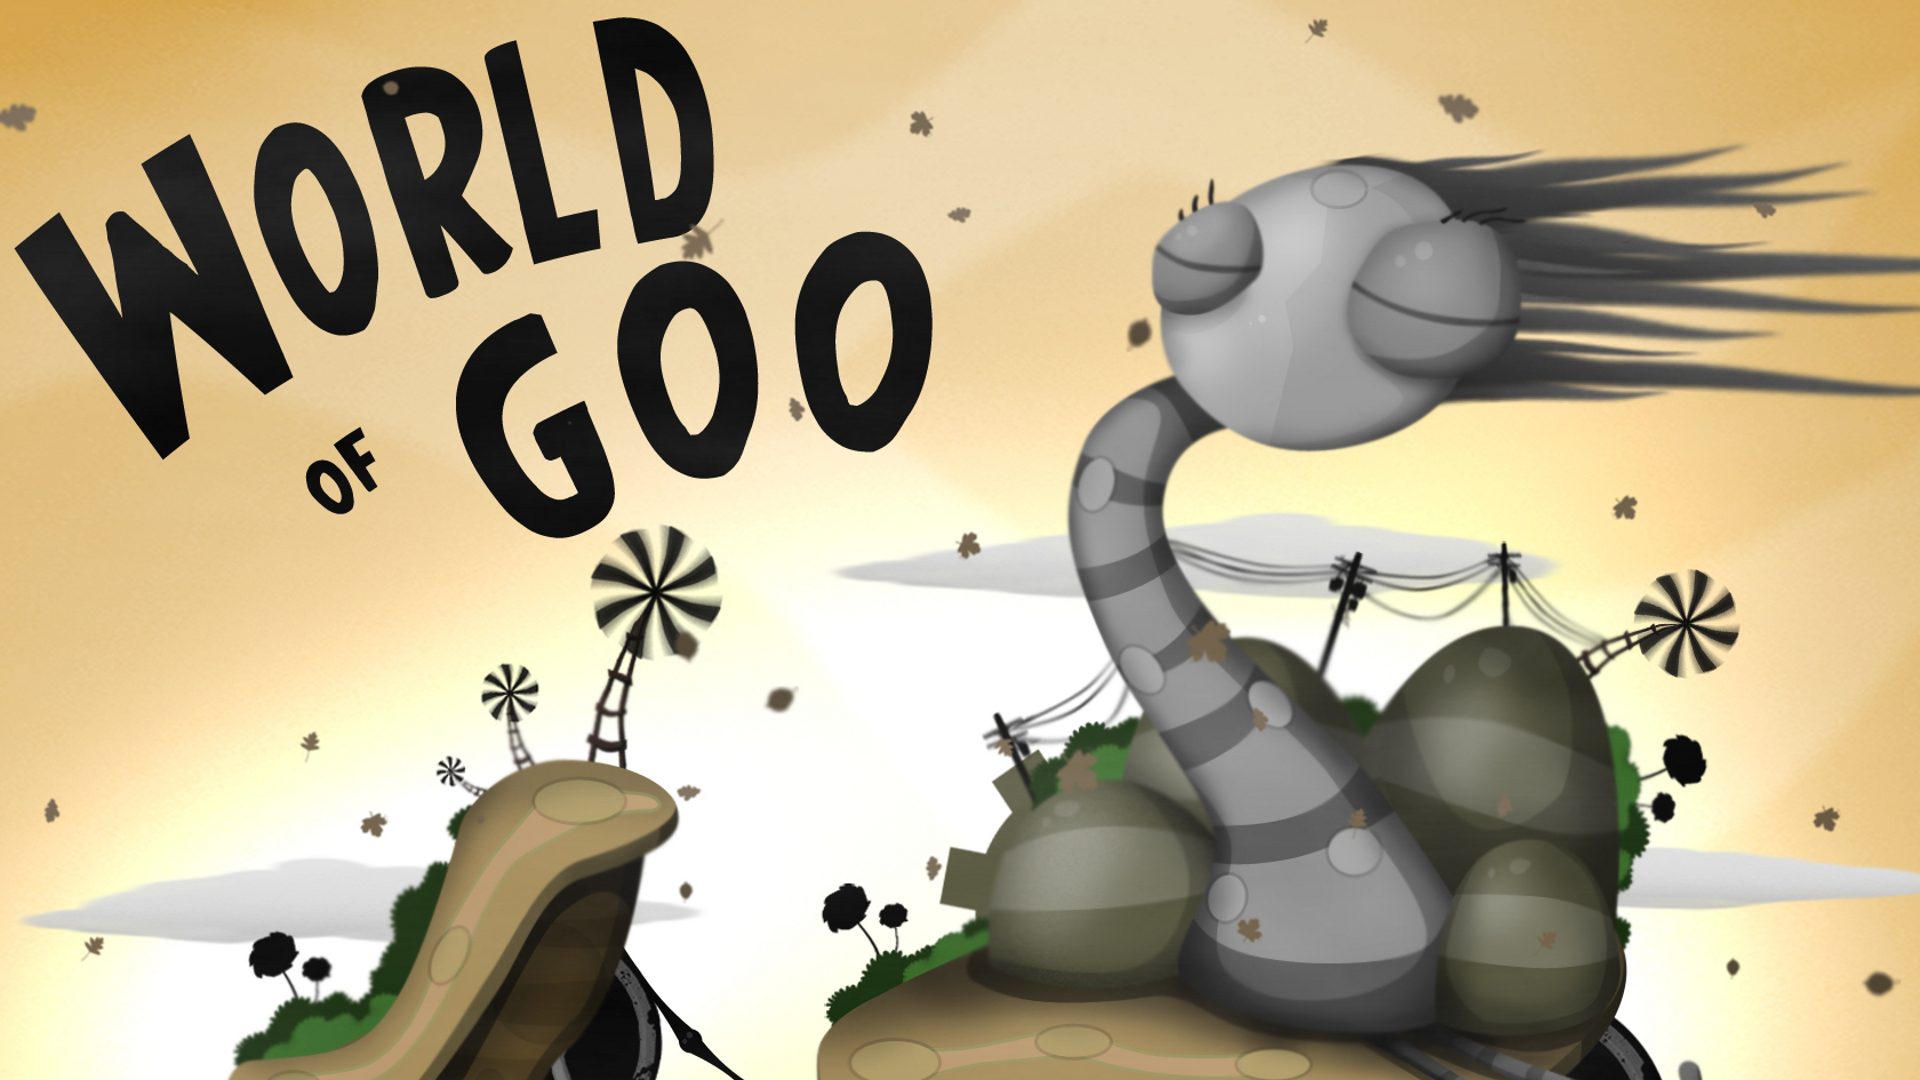 World Of Goo Wallpaper - World Of Goo Wallpaper